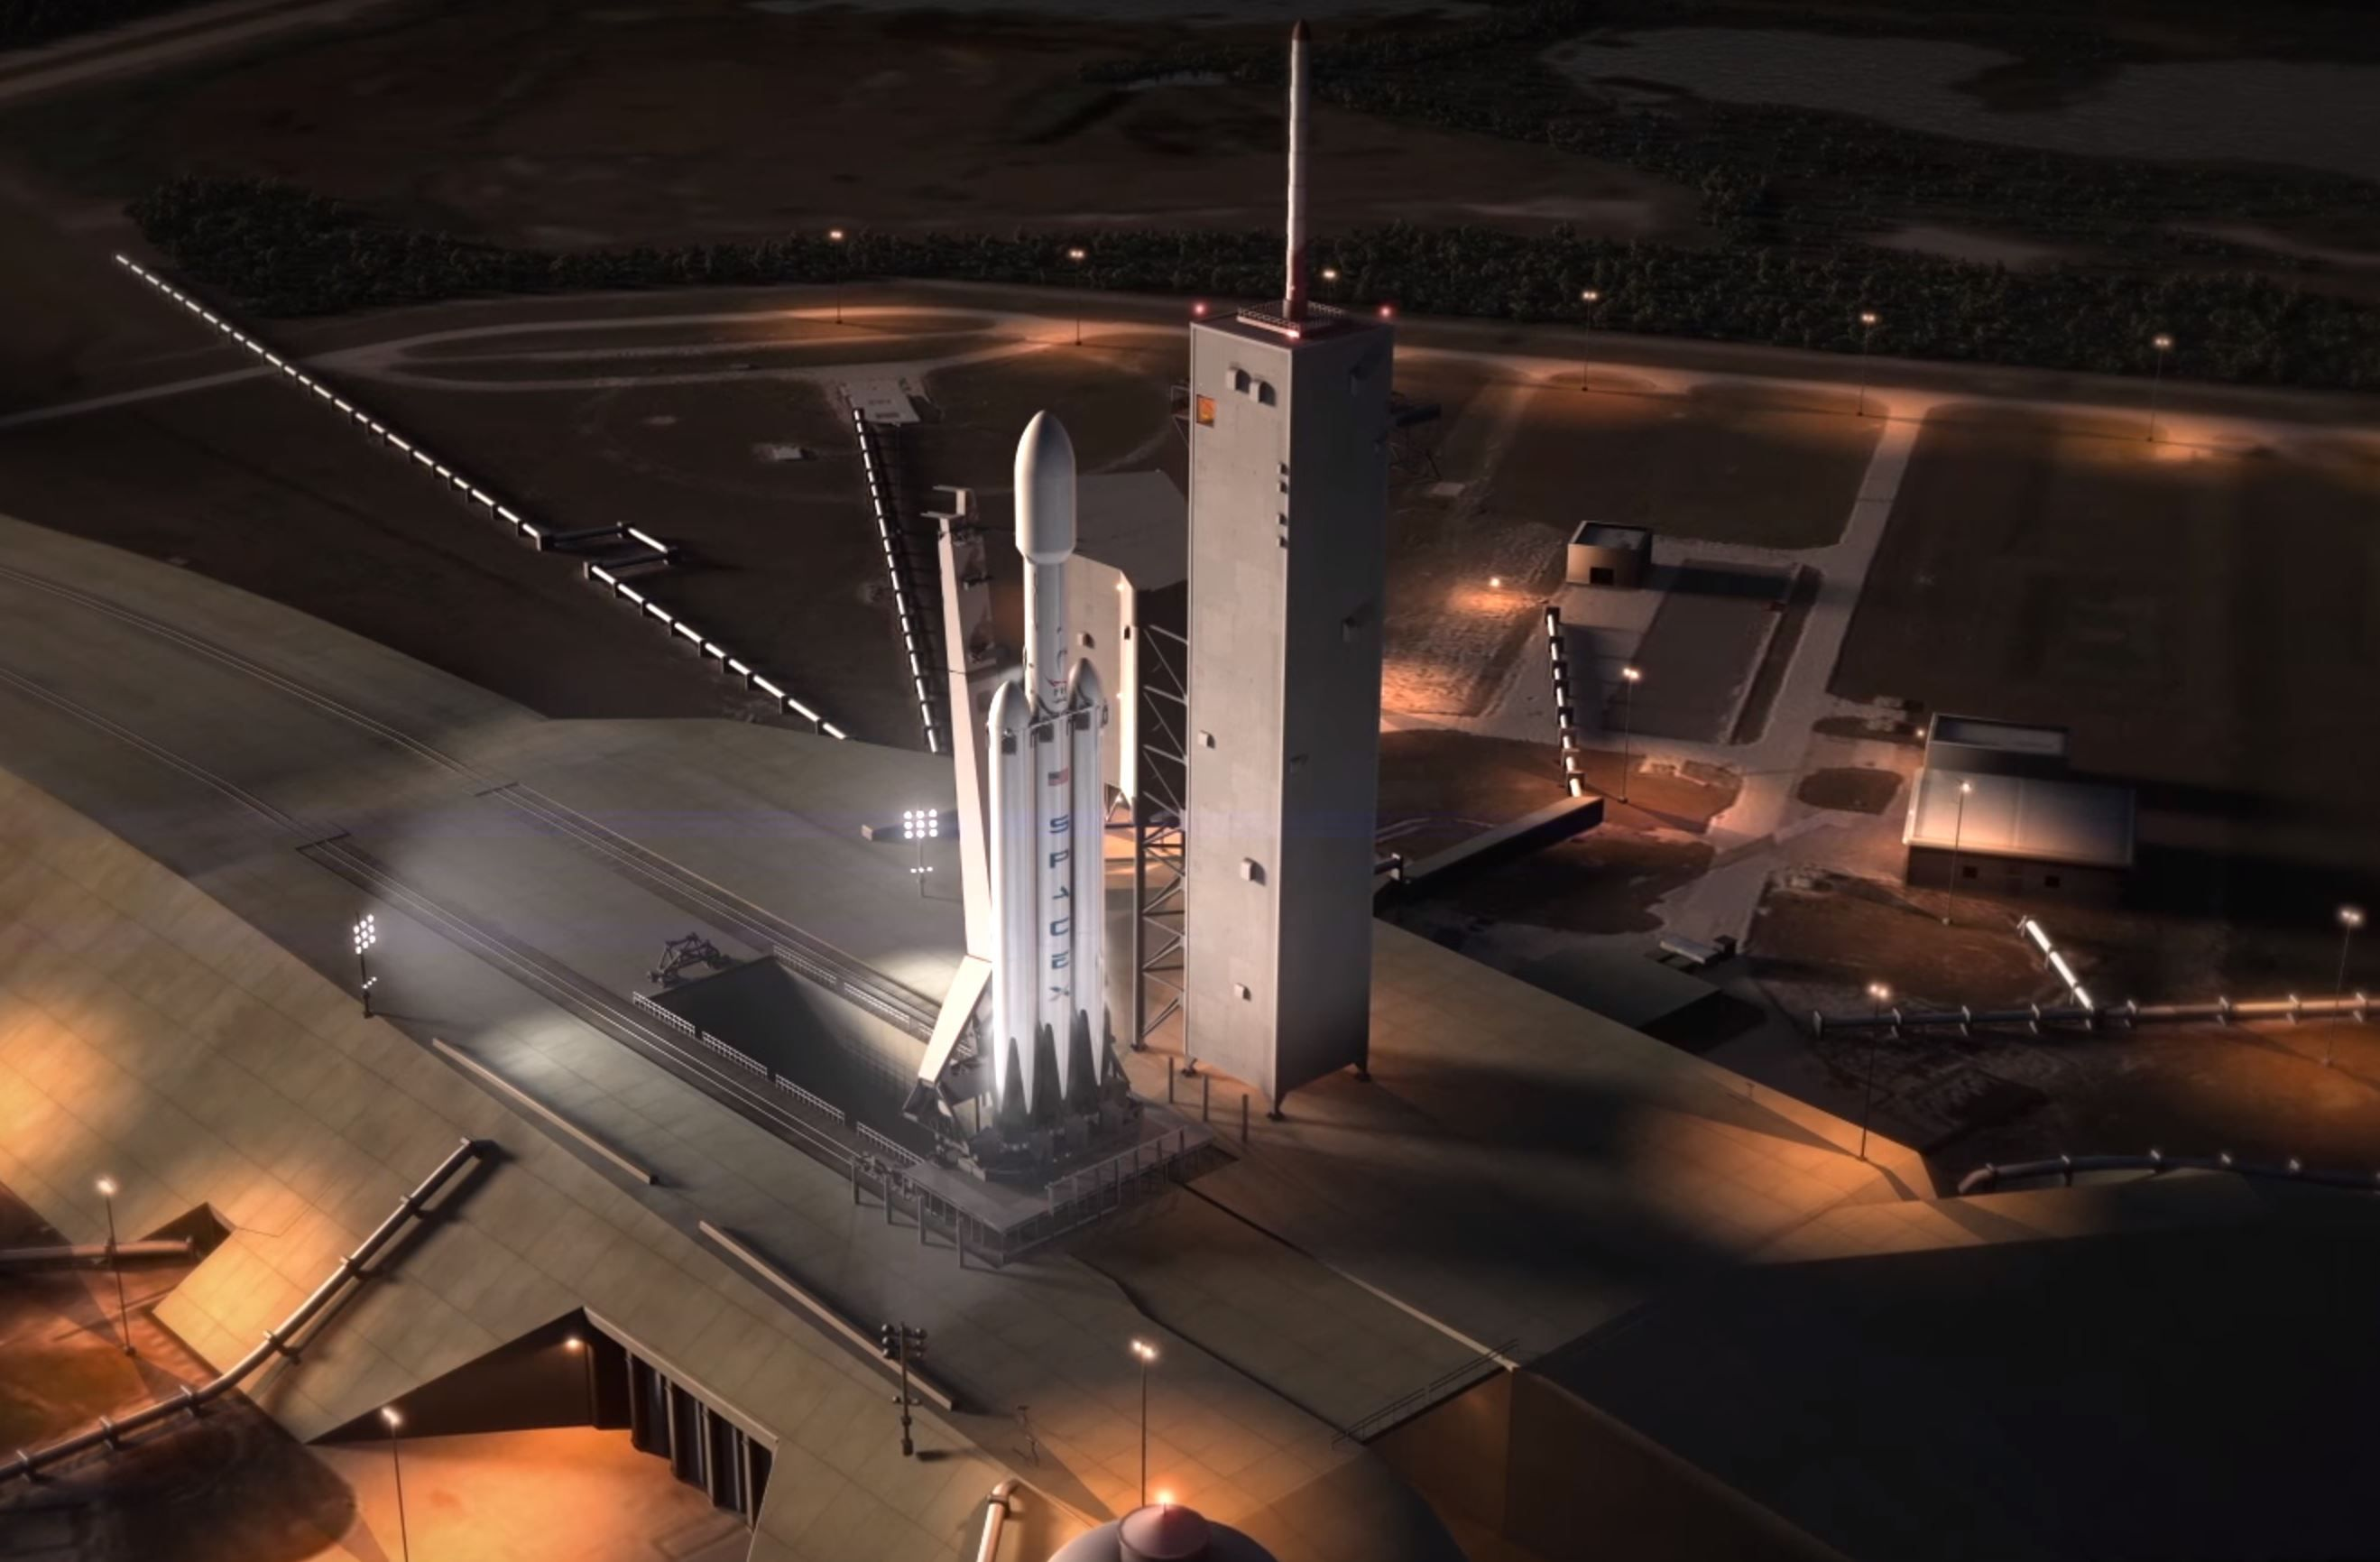 Launch Date for SpaceX Falcon Heavy set for February 6, 2018